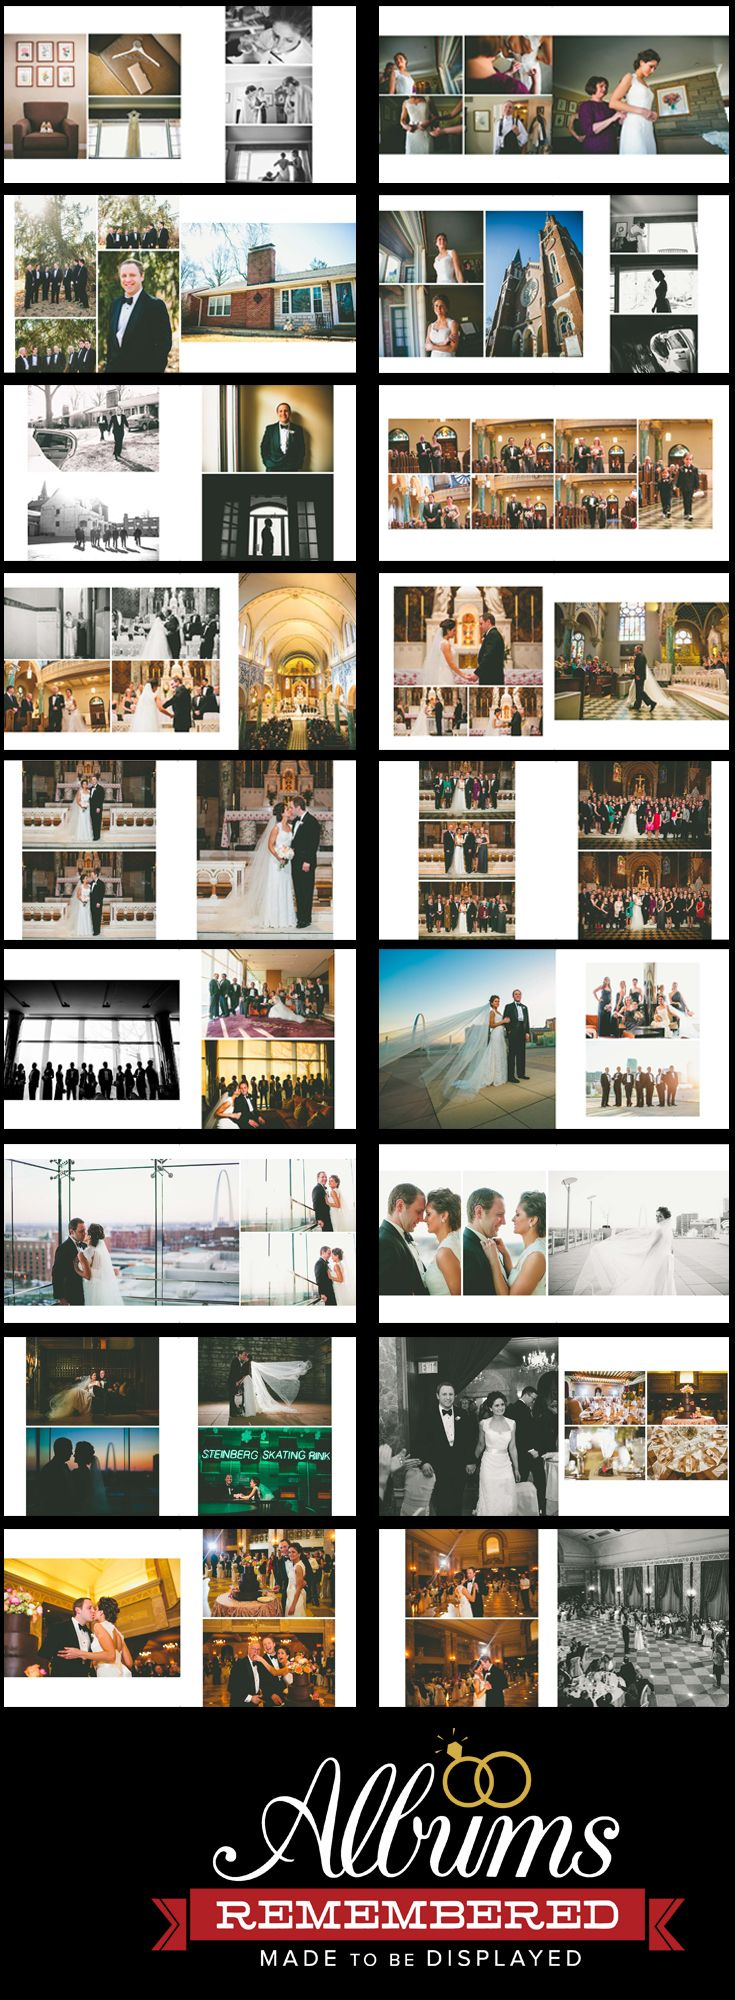 Free wedding album design service www.albumsremembered.com